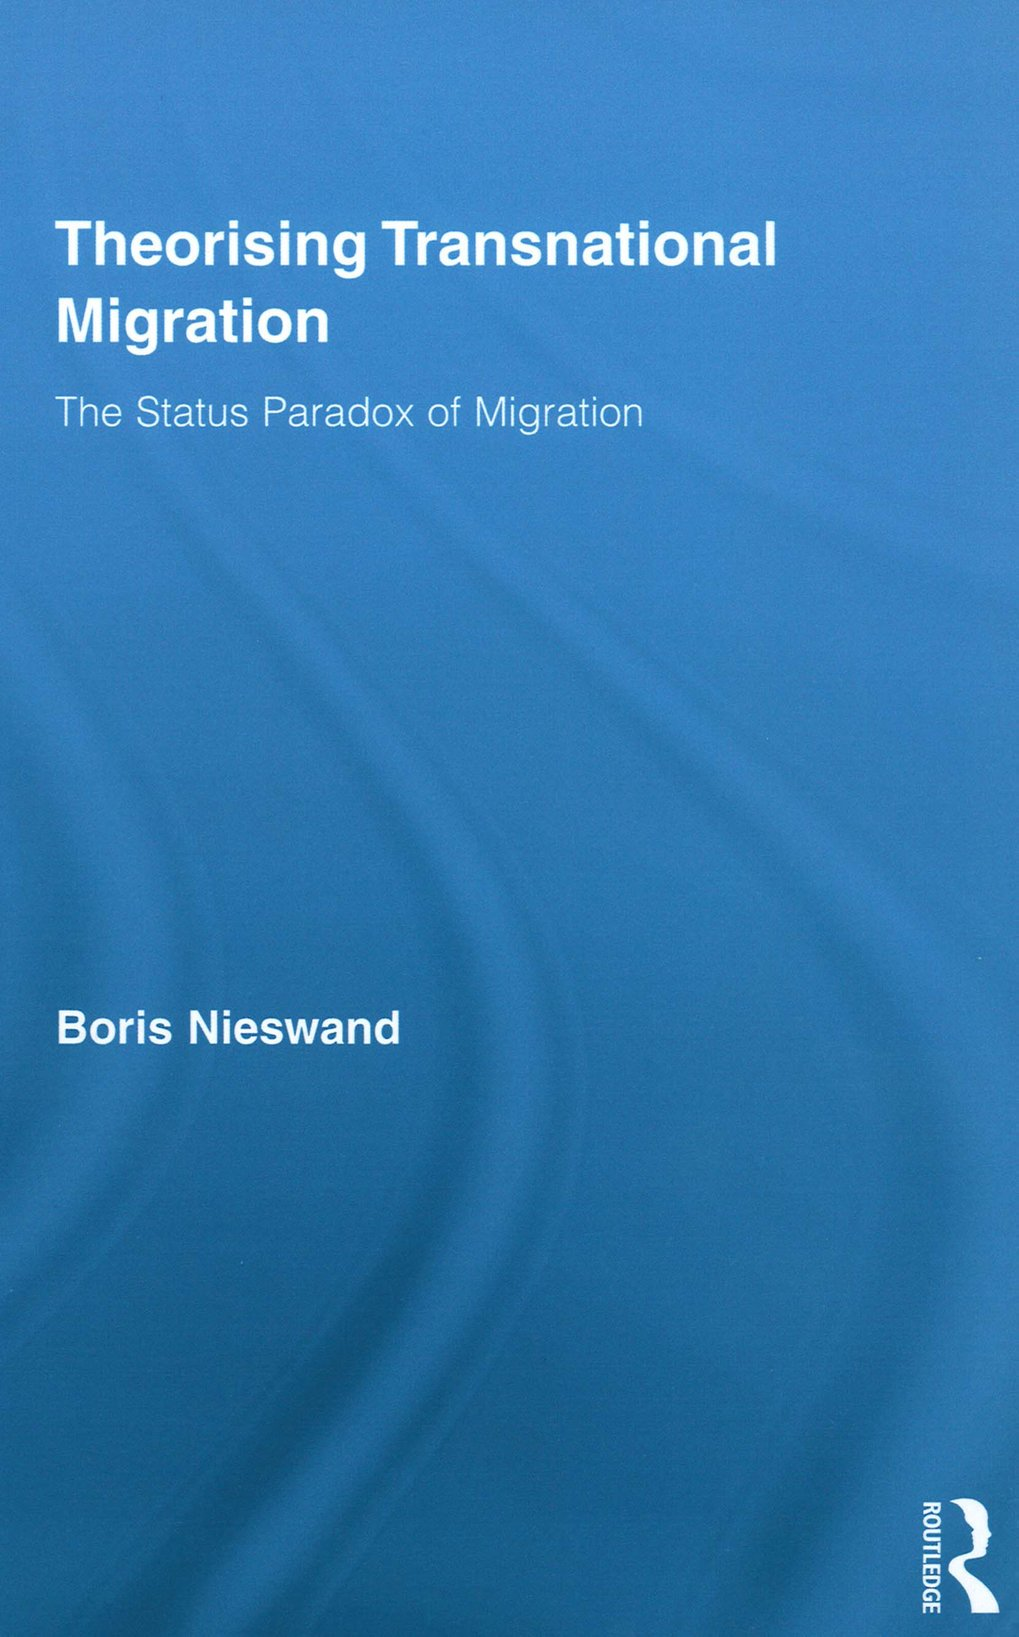 Theorising Transnational Migration. The status paradox of migration